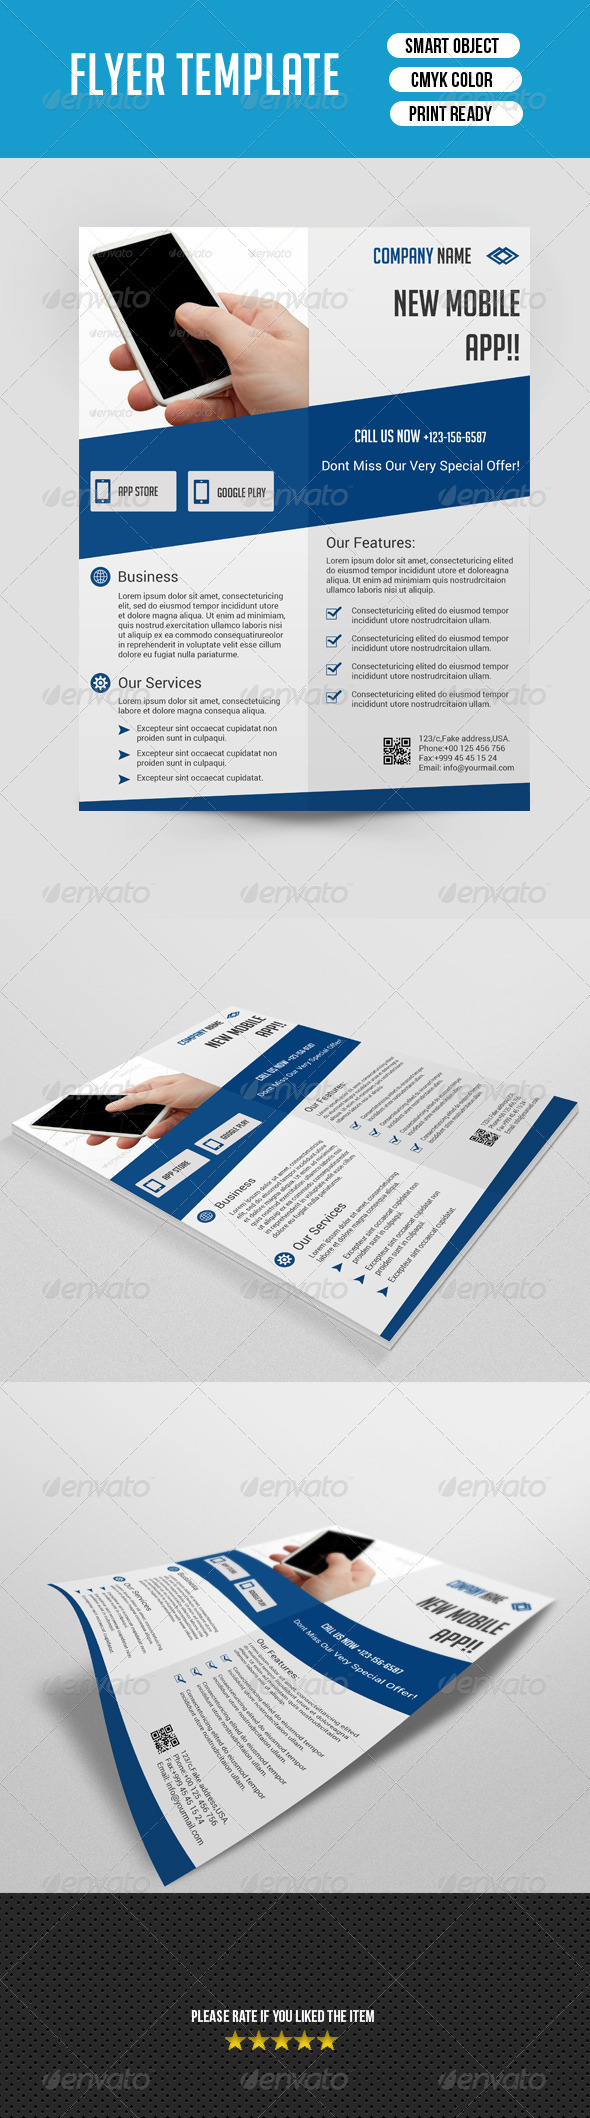 GraphicRiver Mobile App Flyer Template 7582687